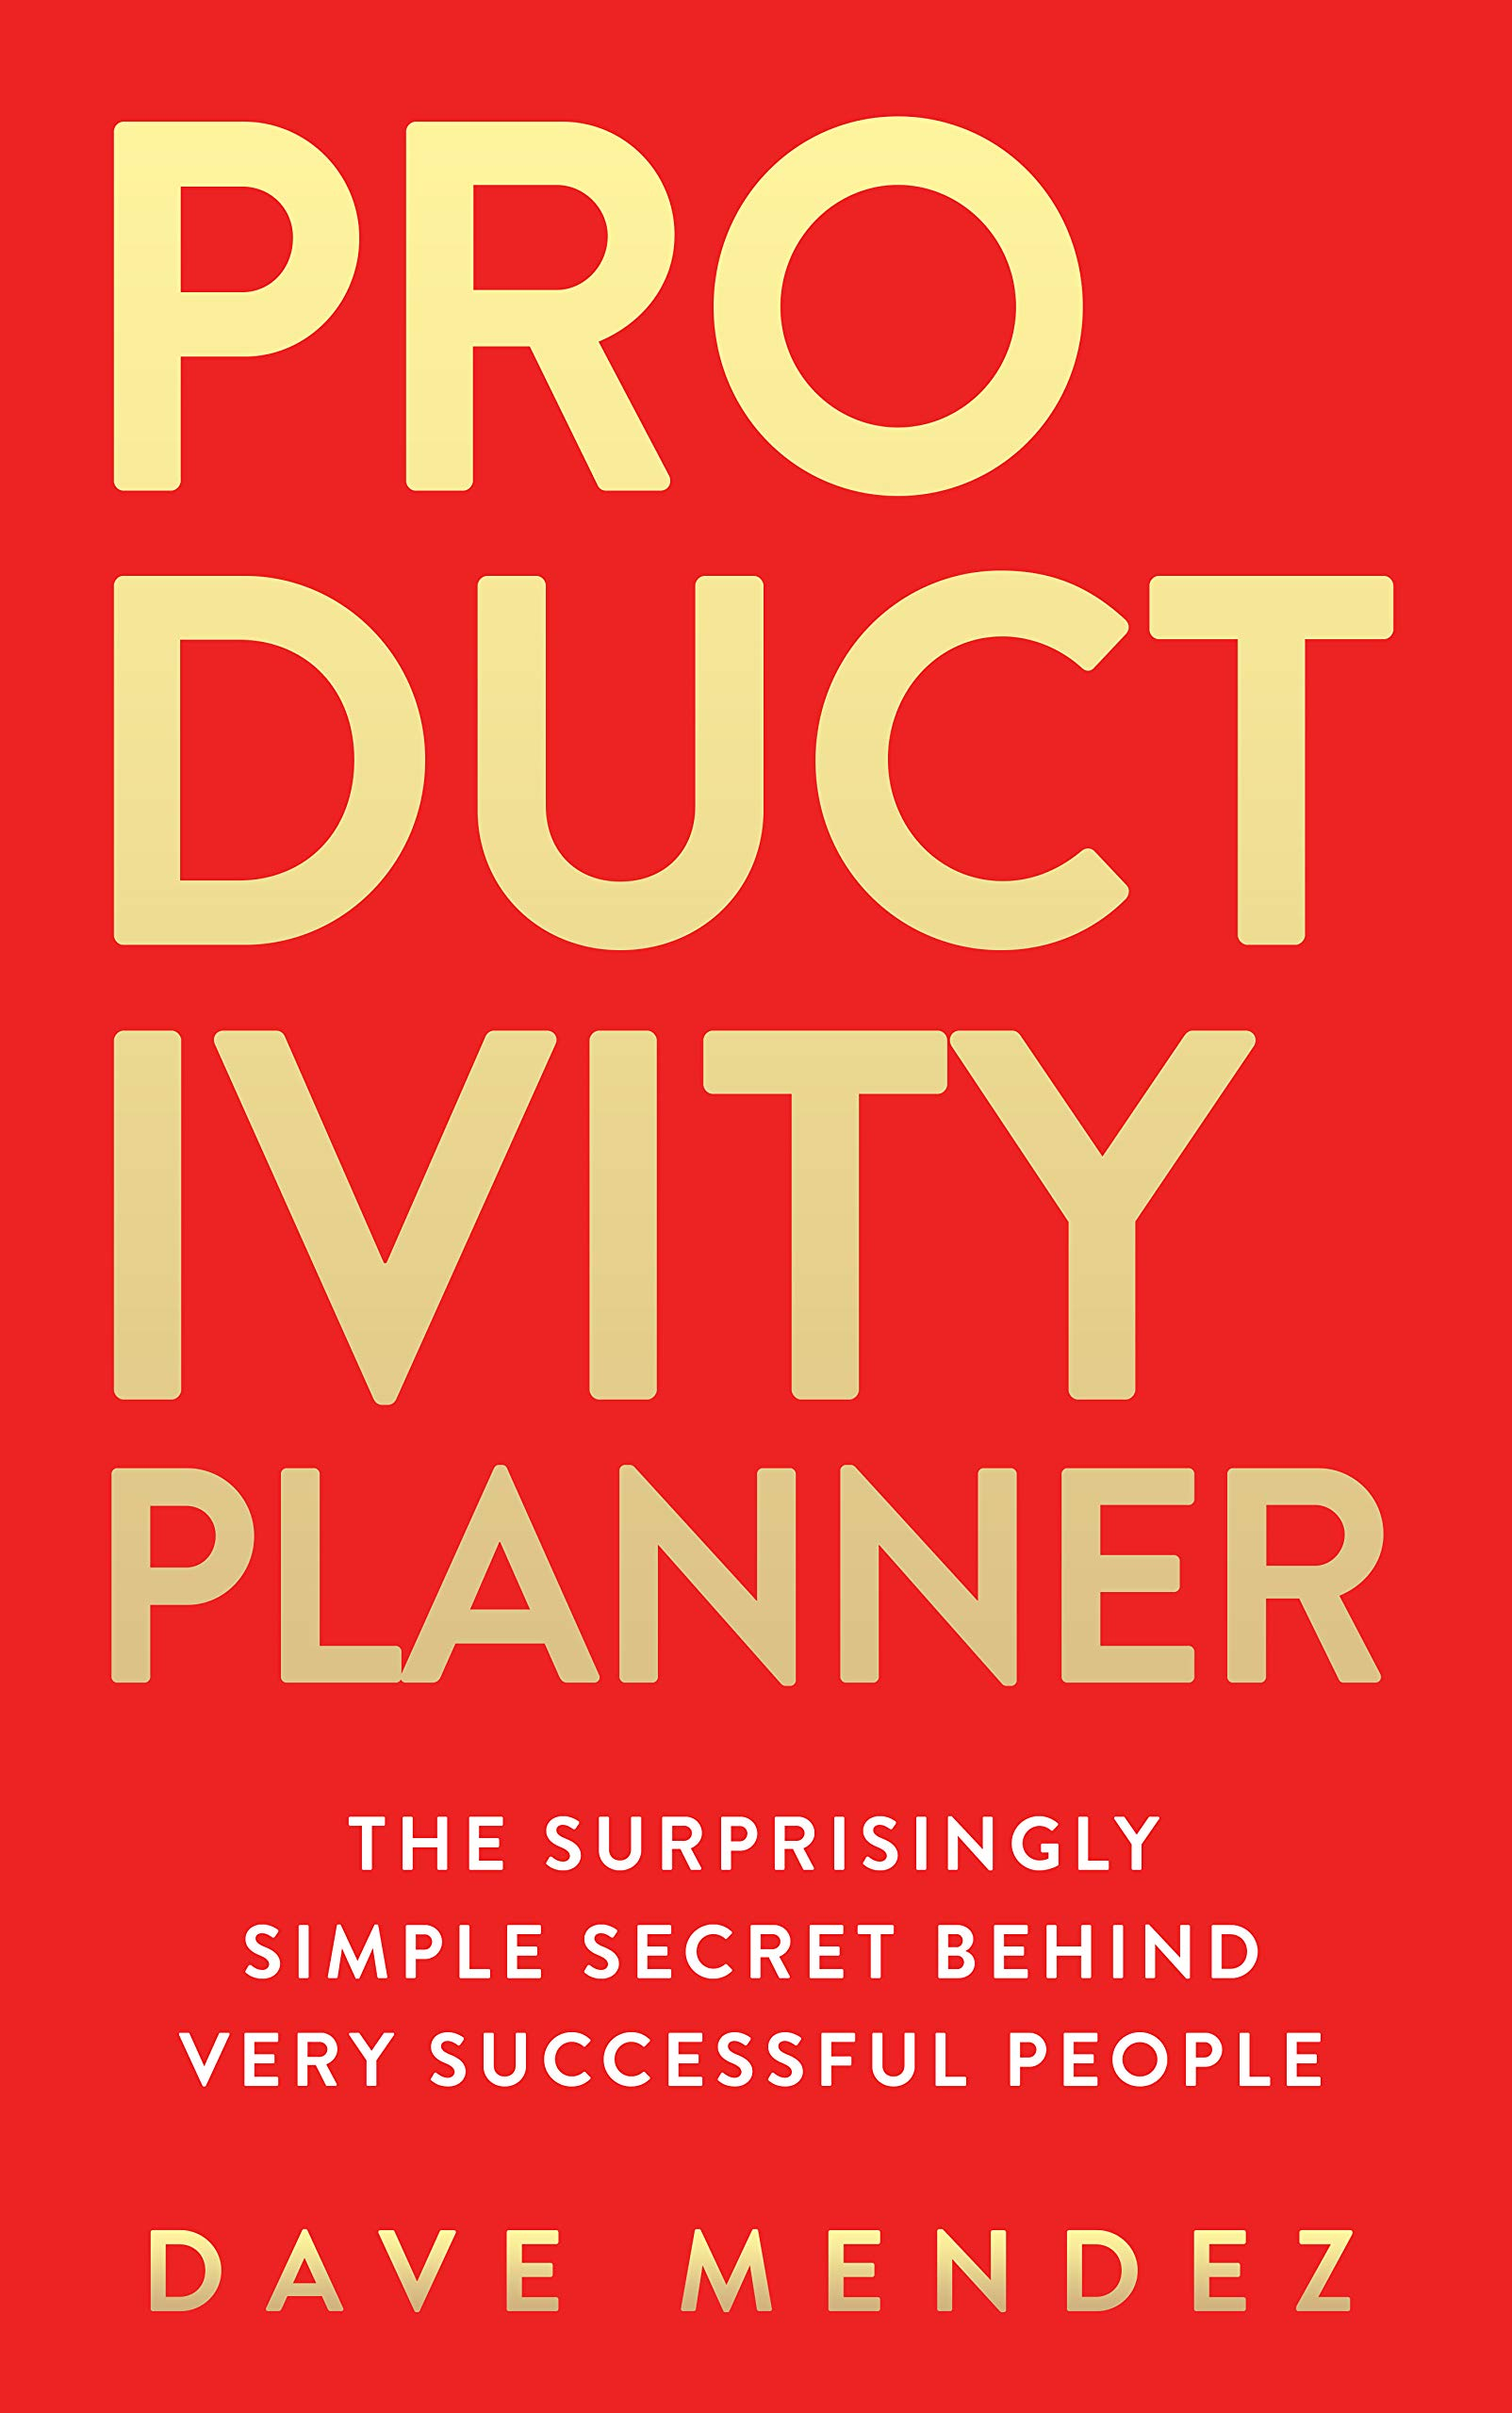 Productivity Planner: The Surprisingly Simple Secret Behind Very Successful People